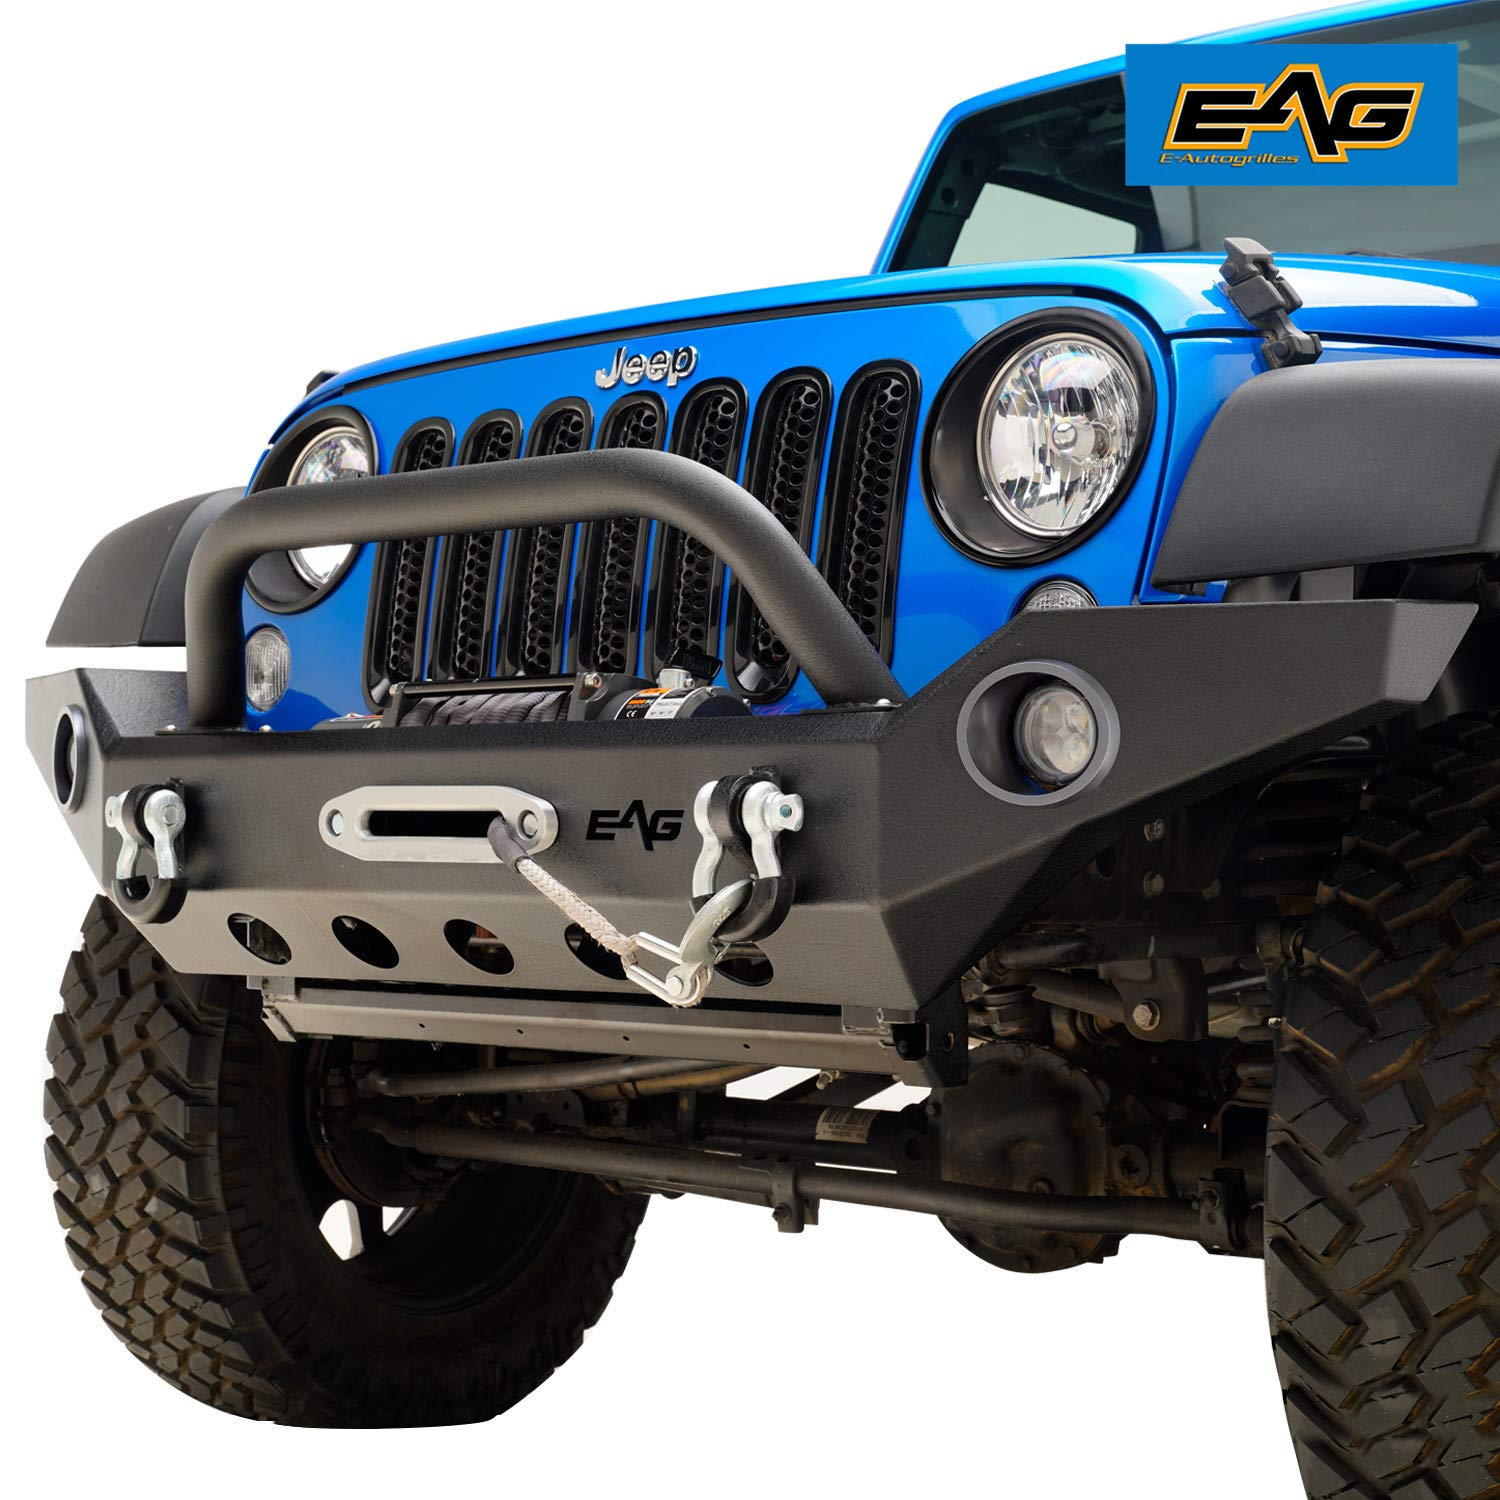 EAG Front Bumper with LED Lights & Winch Plate